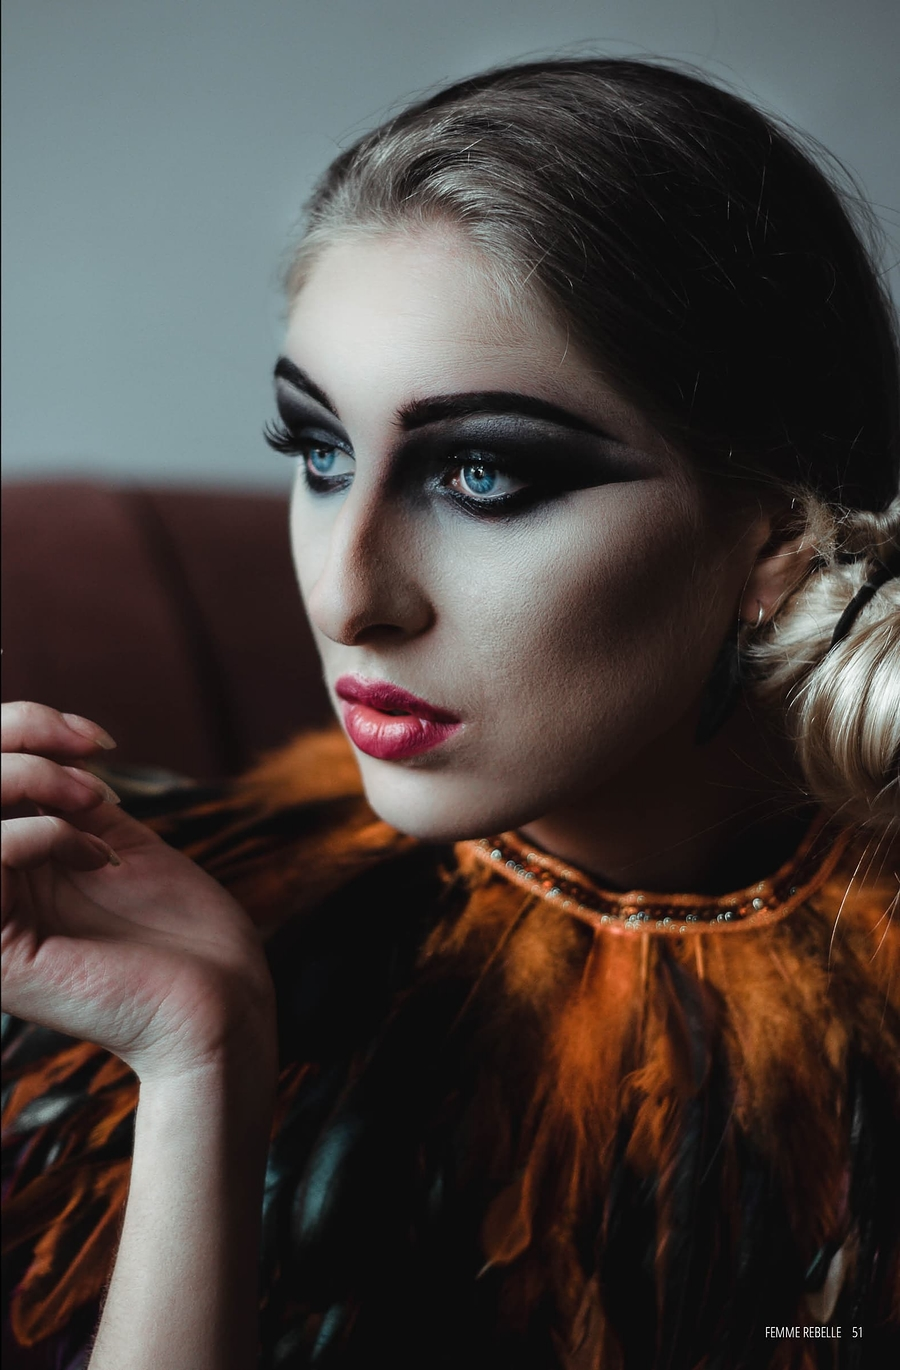 Obsidian / Model Ashleigh claire, Makeup by Adam Mark Williams / Uploaded 9th February 2020 @ 08:16 PM